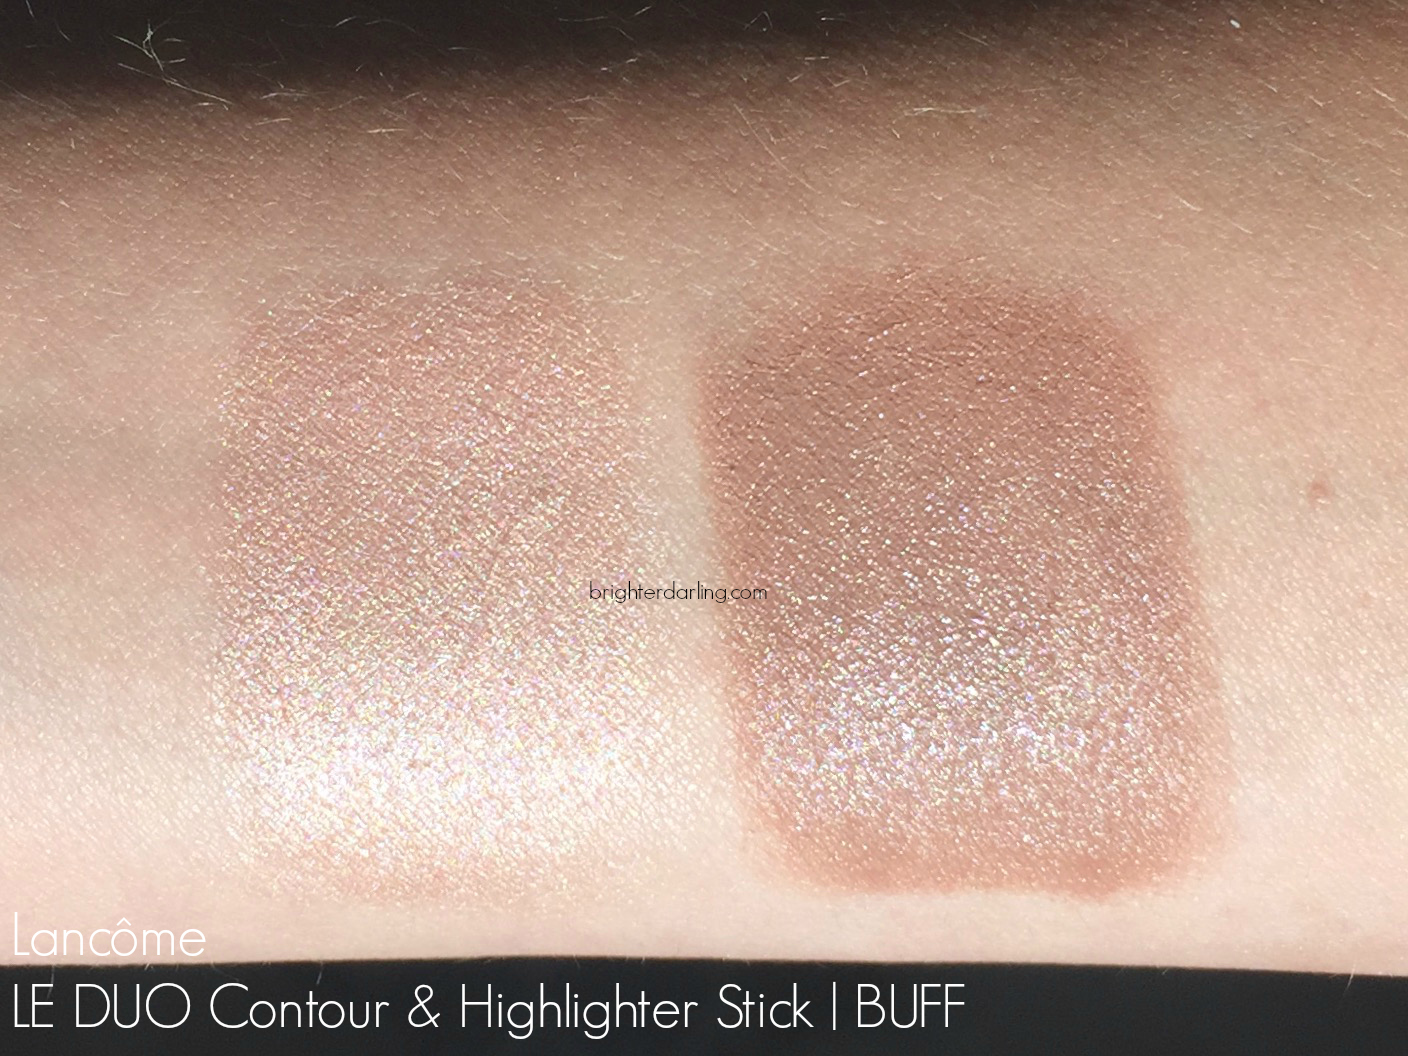 Lancome Le Duo Contour Highlighter Buff Swatches #brighterdarling.com